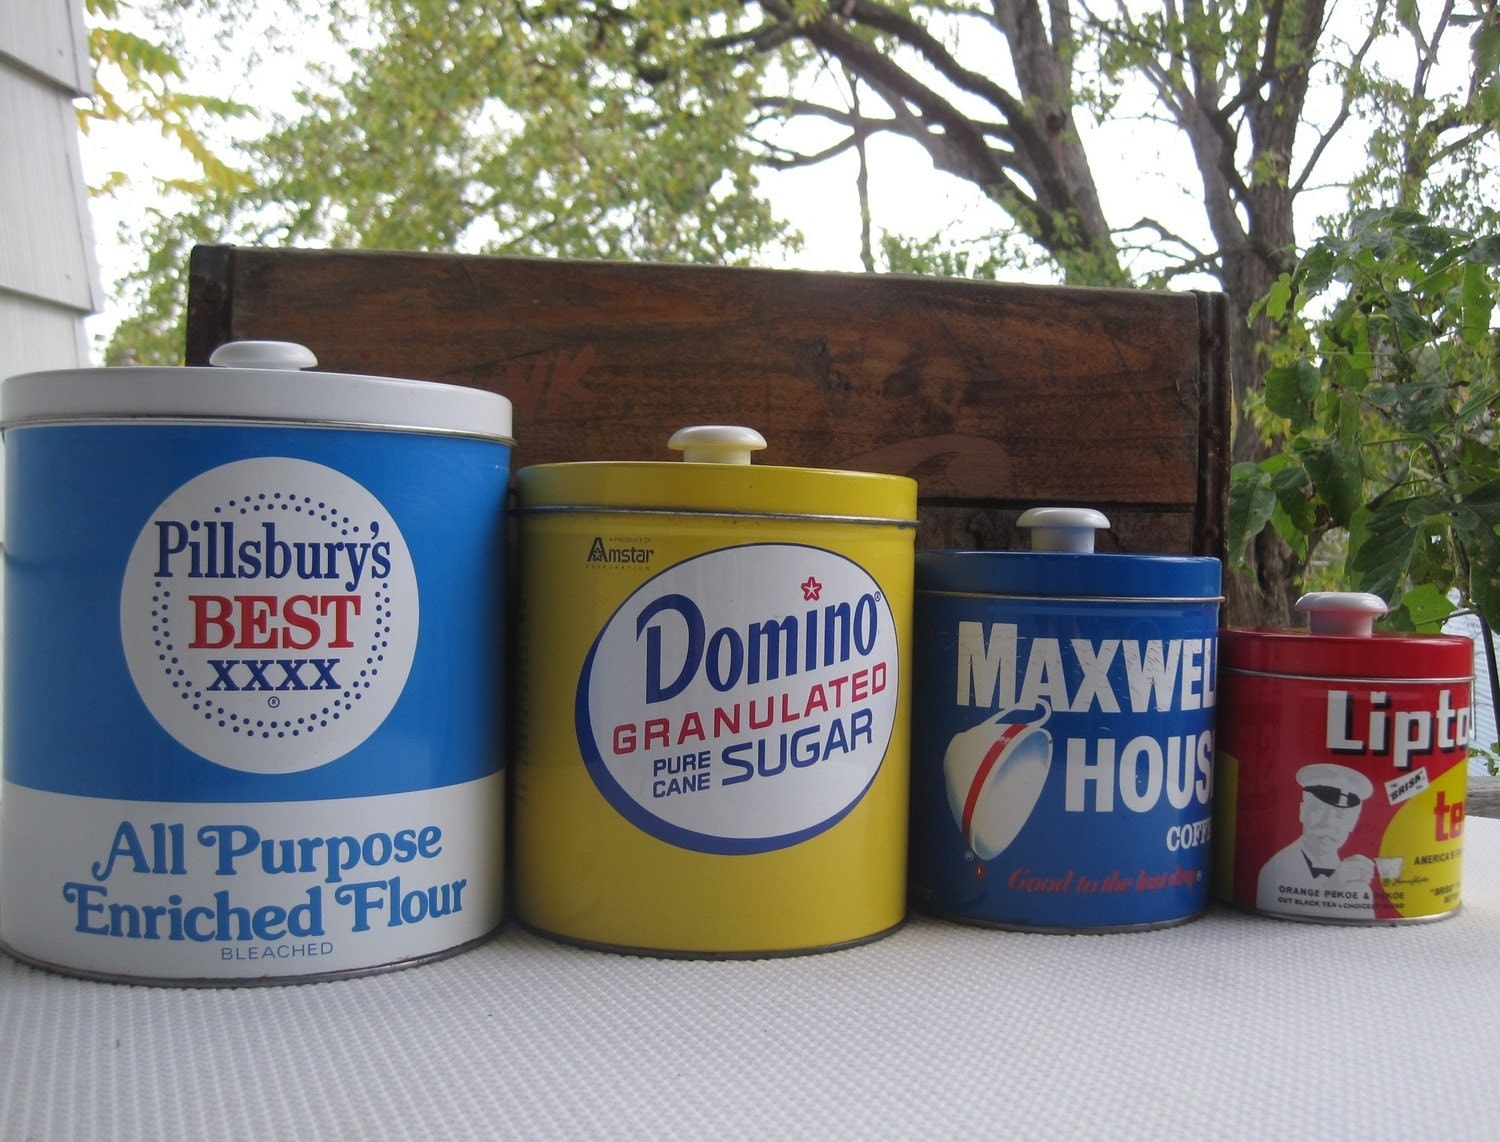 28 vintage metal kitchen canister sets vintage aluminum vintage metal kitchen canister sets vintage j l clark metal kitchen canister set pillsbury domino